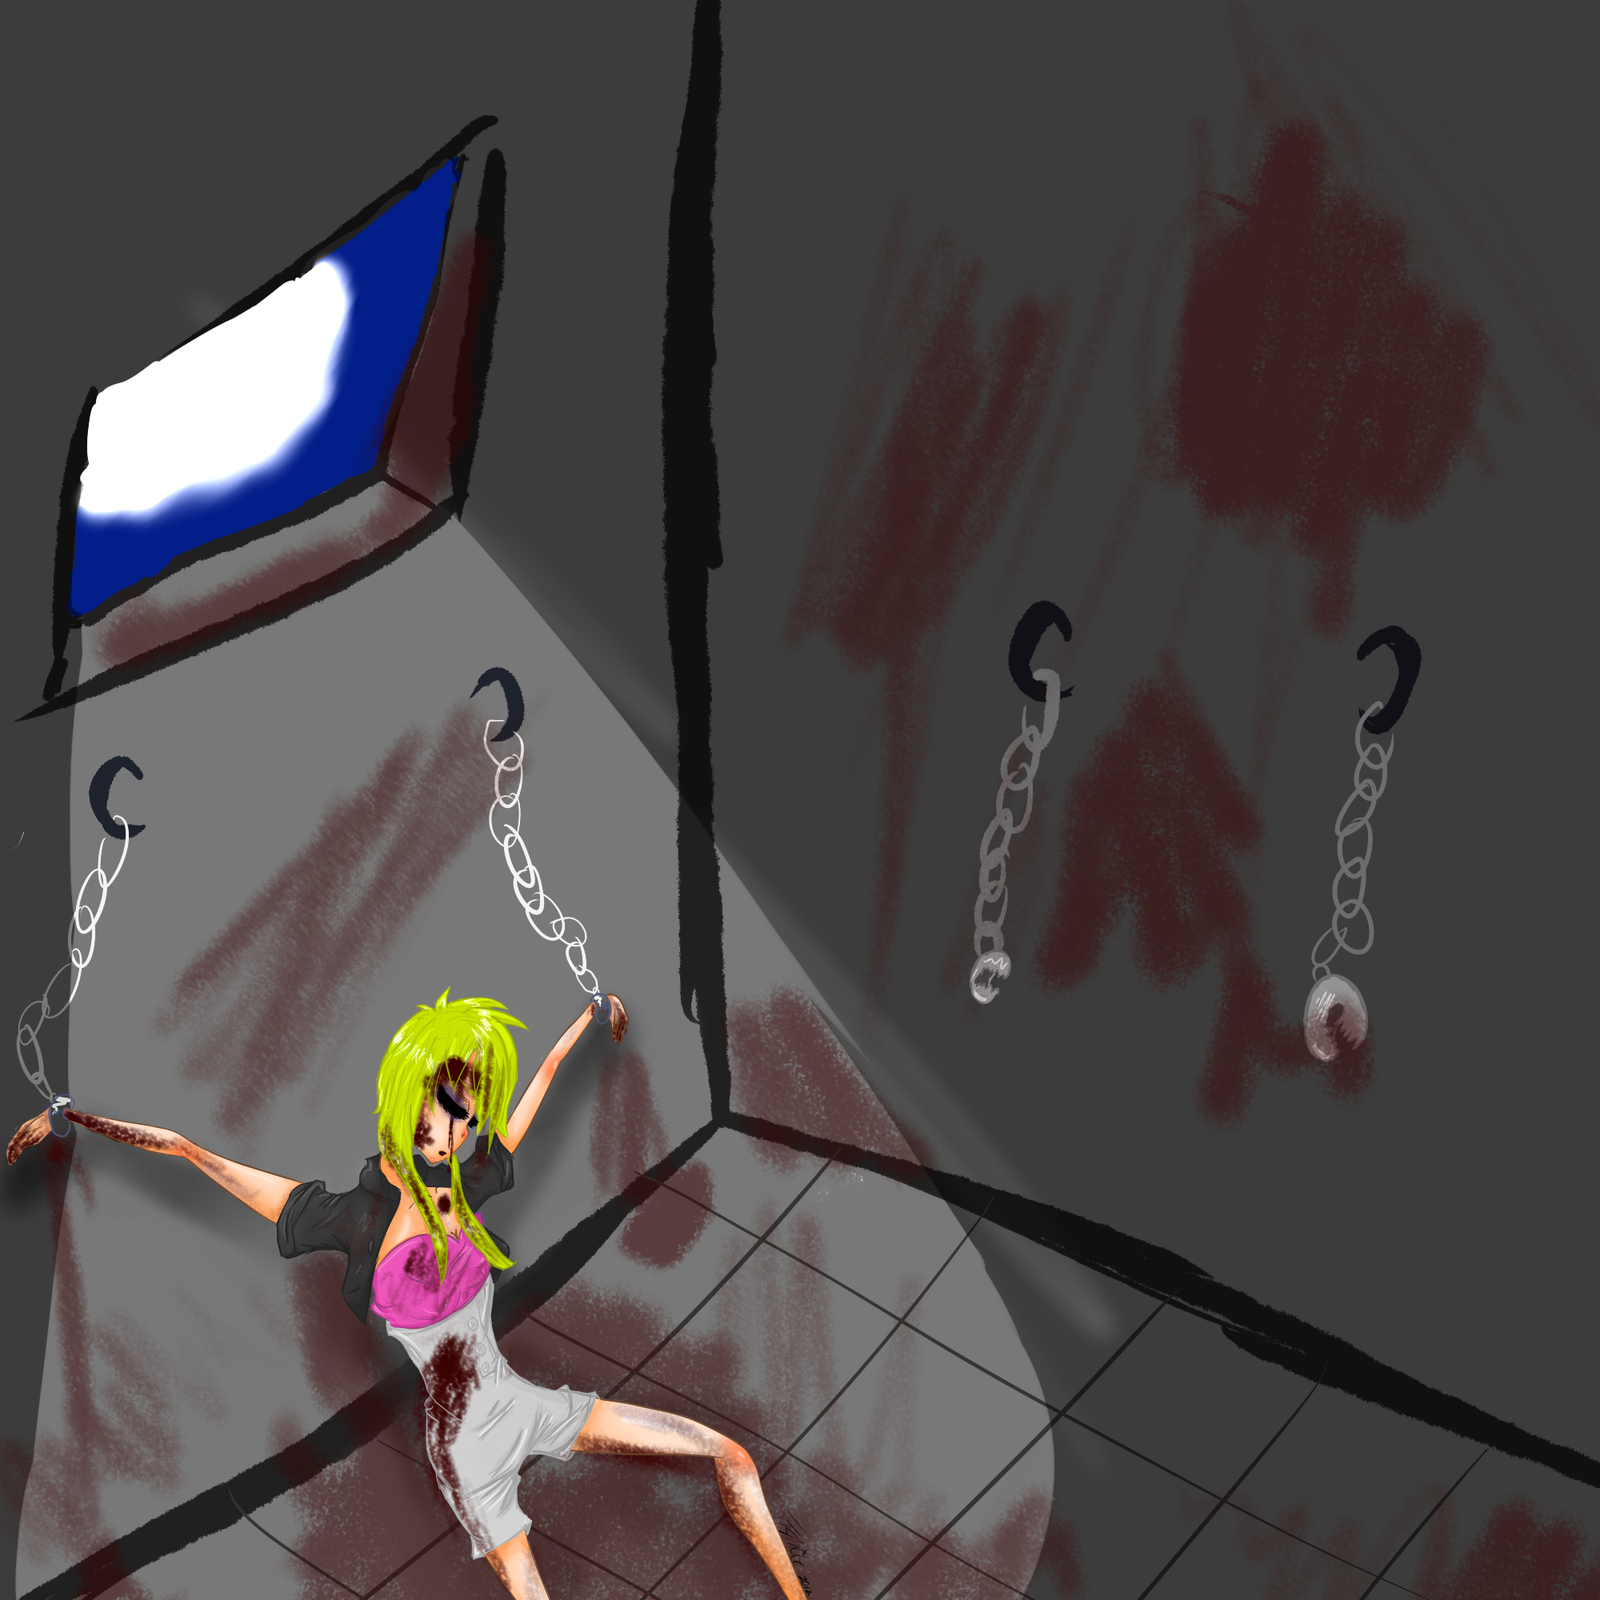 Anime girl chained to a wall